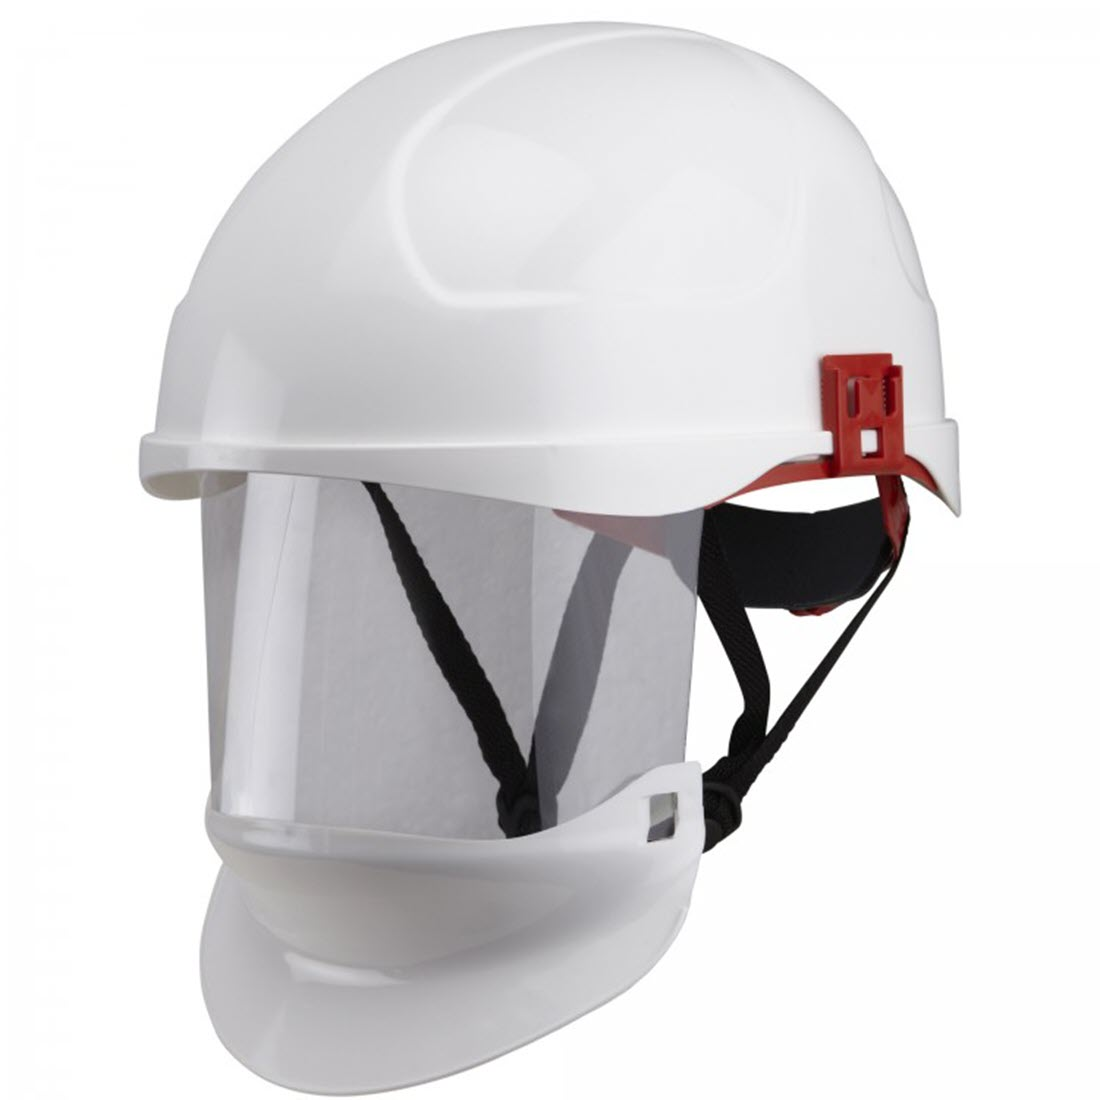 Helmet with face shield